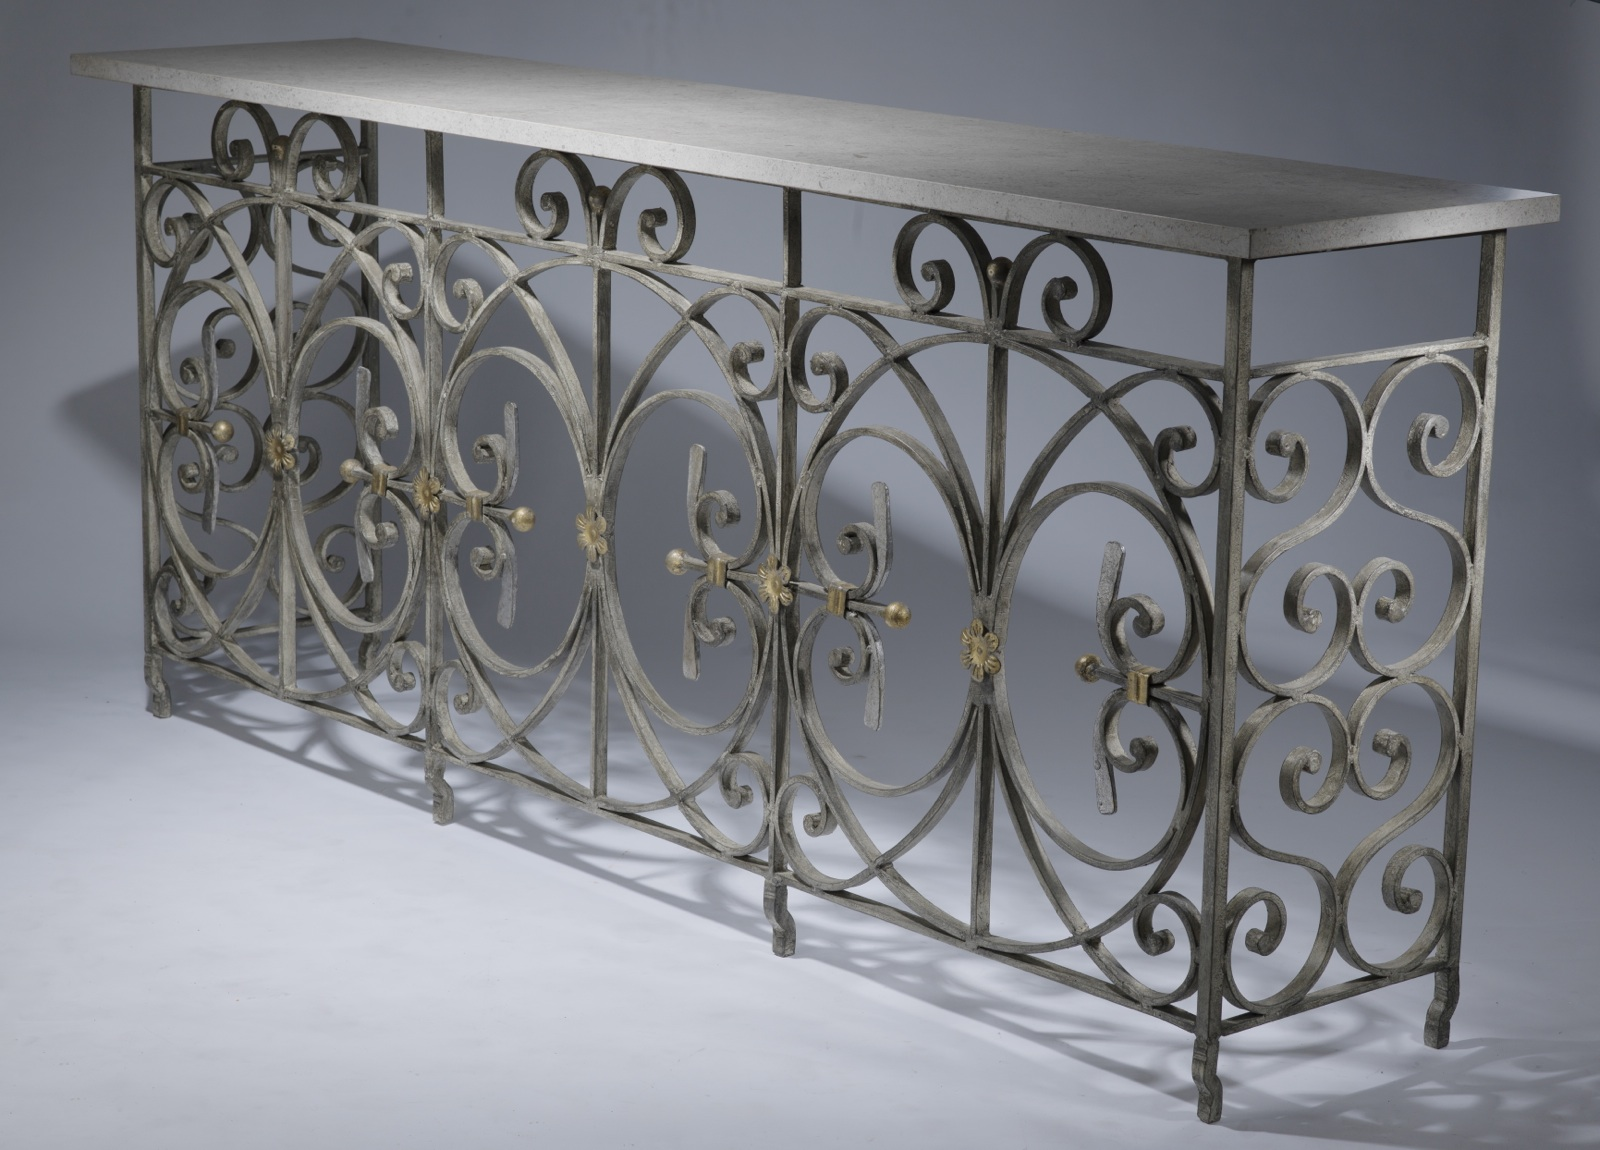 Wrought Iron Circle Console Table Available In Brown Bronze Finish With Marble Top on Antique Tables